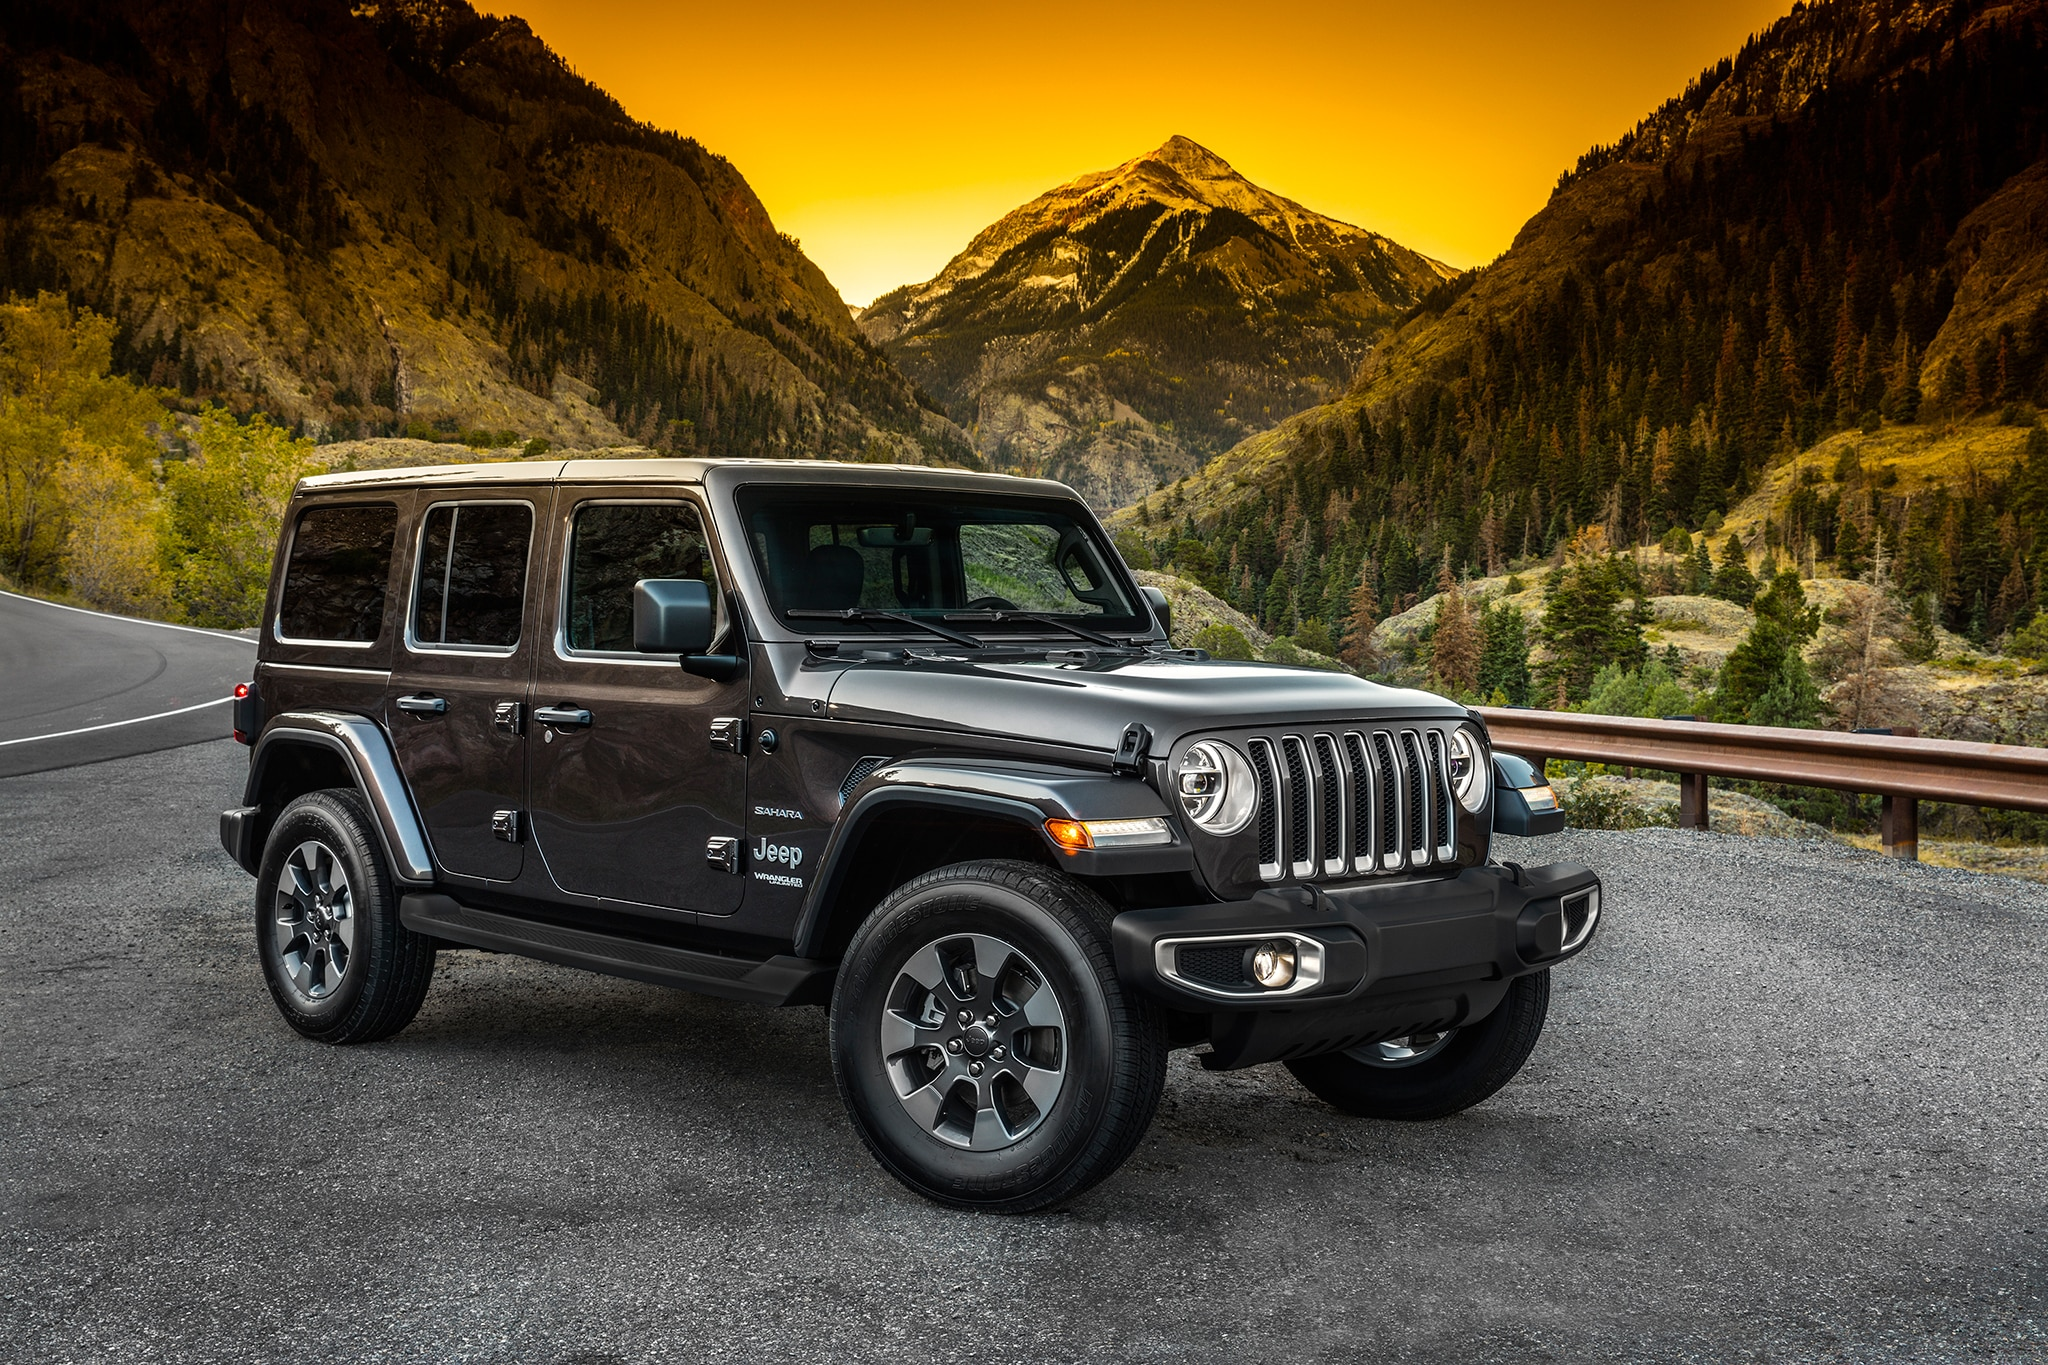 2018 Jeep Wranger Unlimited Sahara